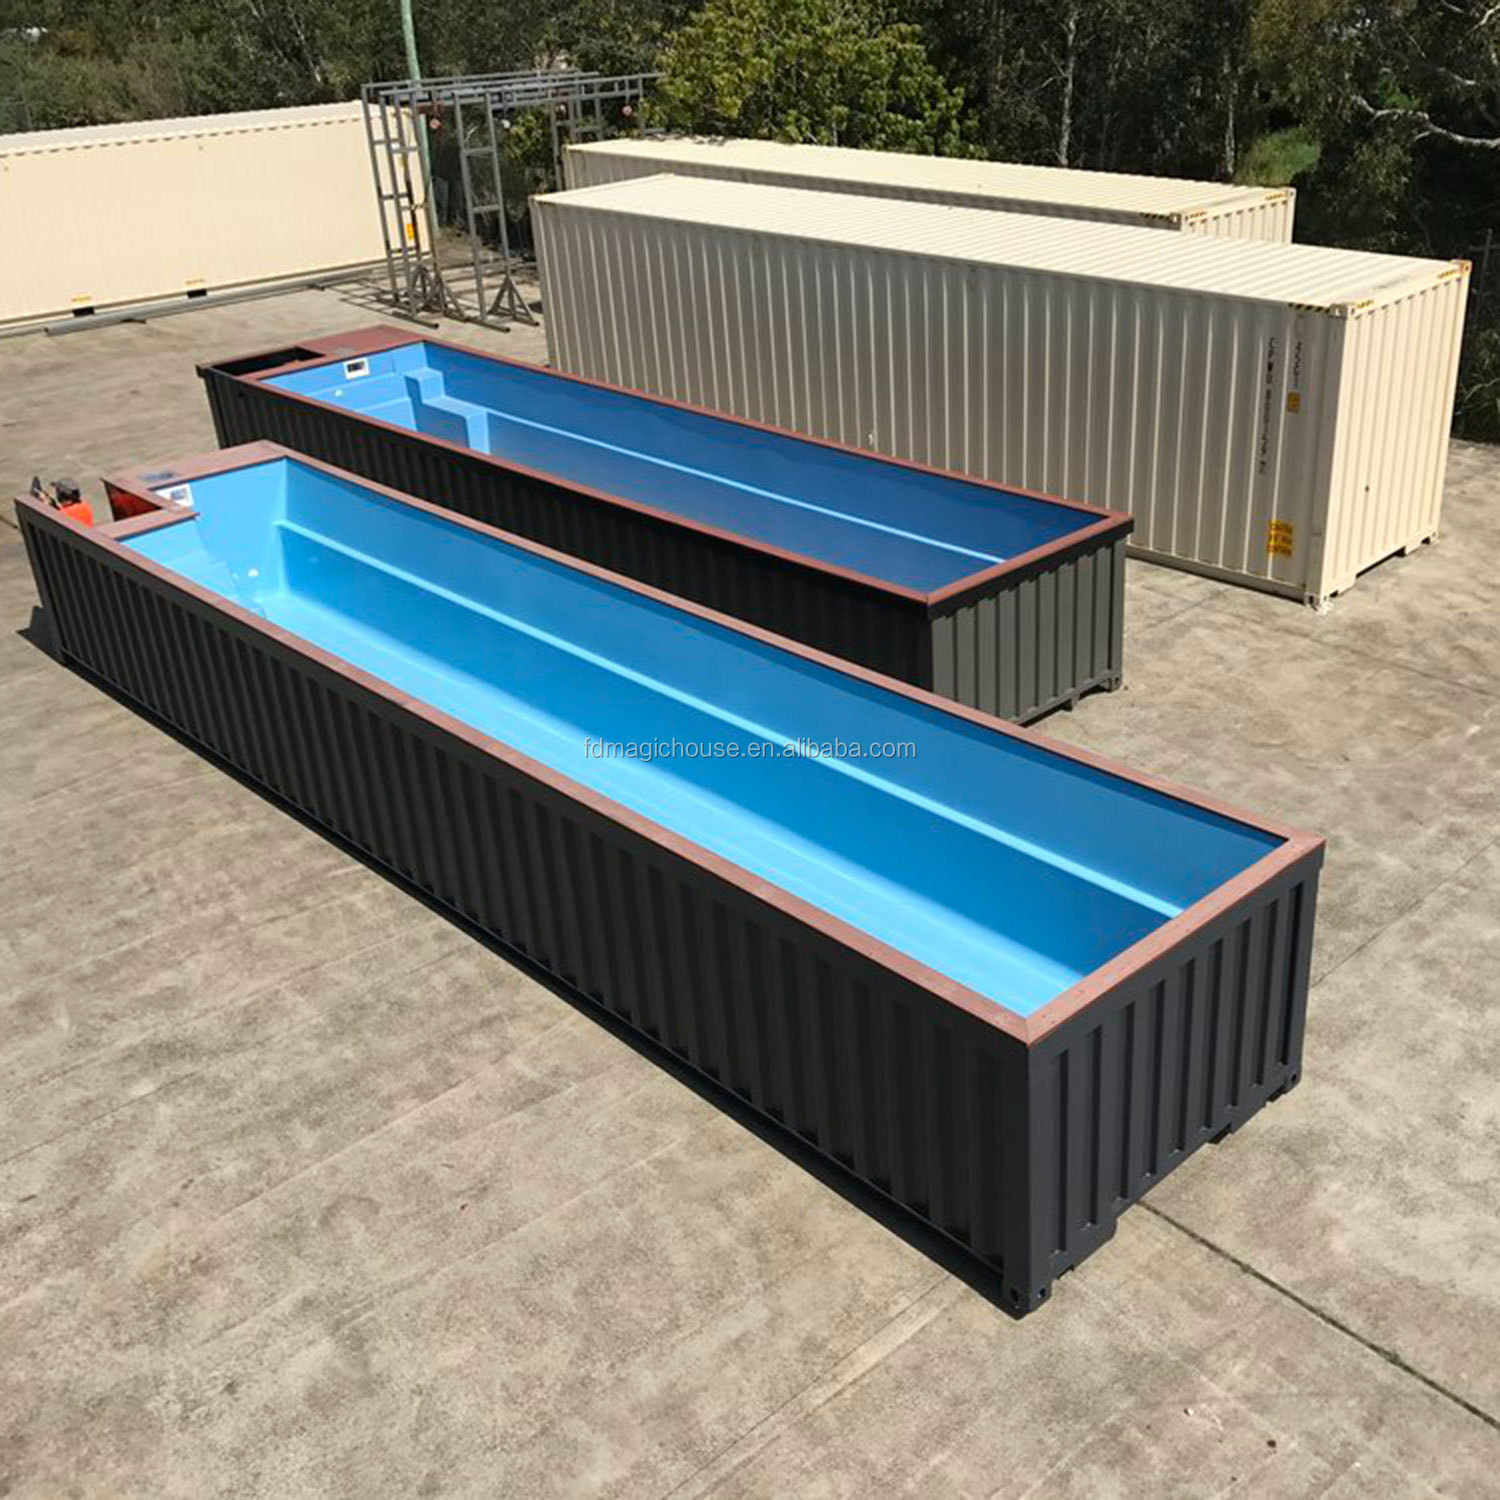 2019 New Design Factory Sale Shipping Container Swimming Pool Cost 20ft  40ft Portable Sea Container Pools - Buy Shipping Container Pool,Shipping ...